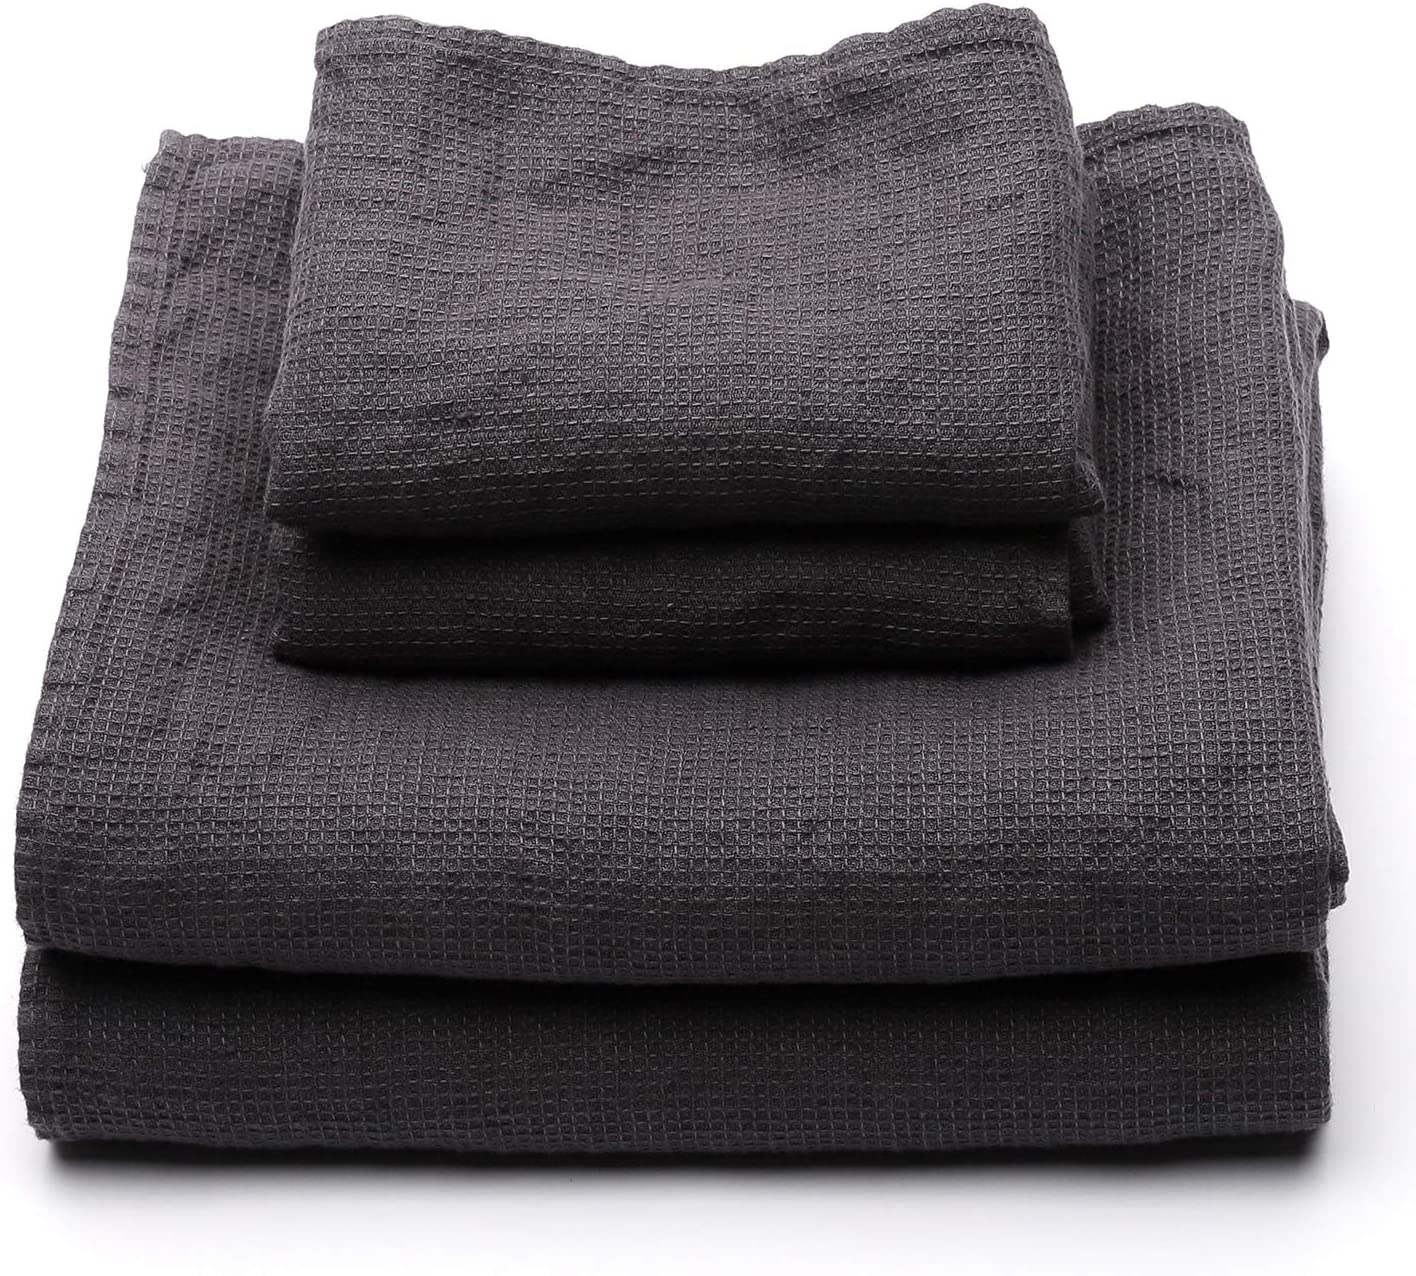 LinenMe Set Waffle Grey Washed 2 low-pricing Made Towels Big Eur Weekly update Hand in